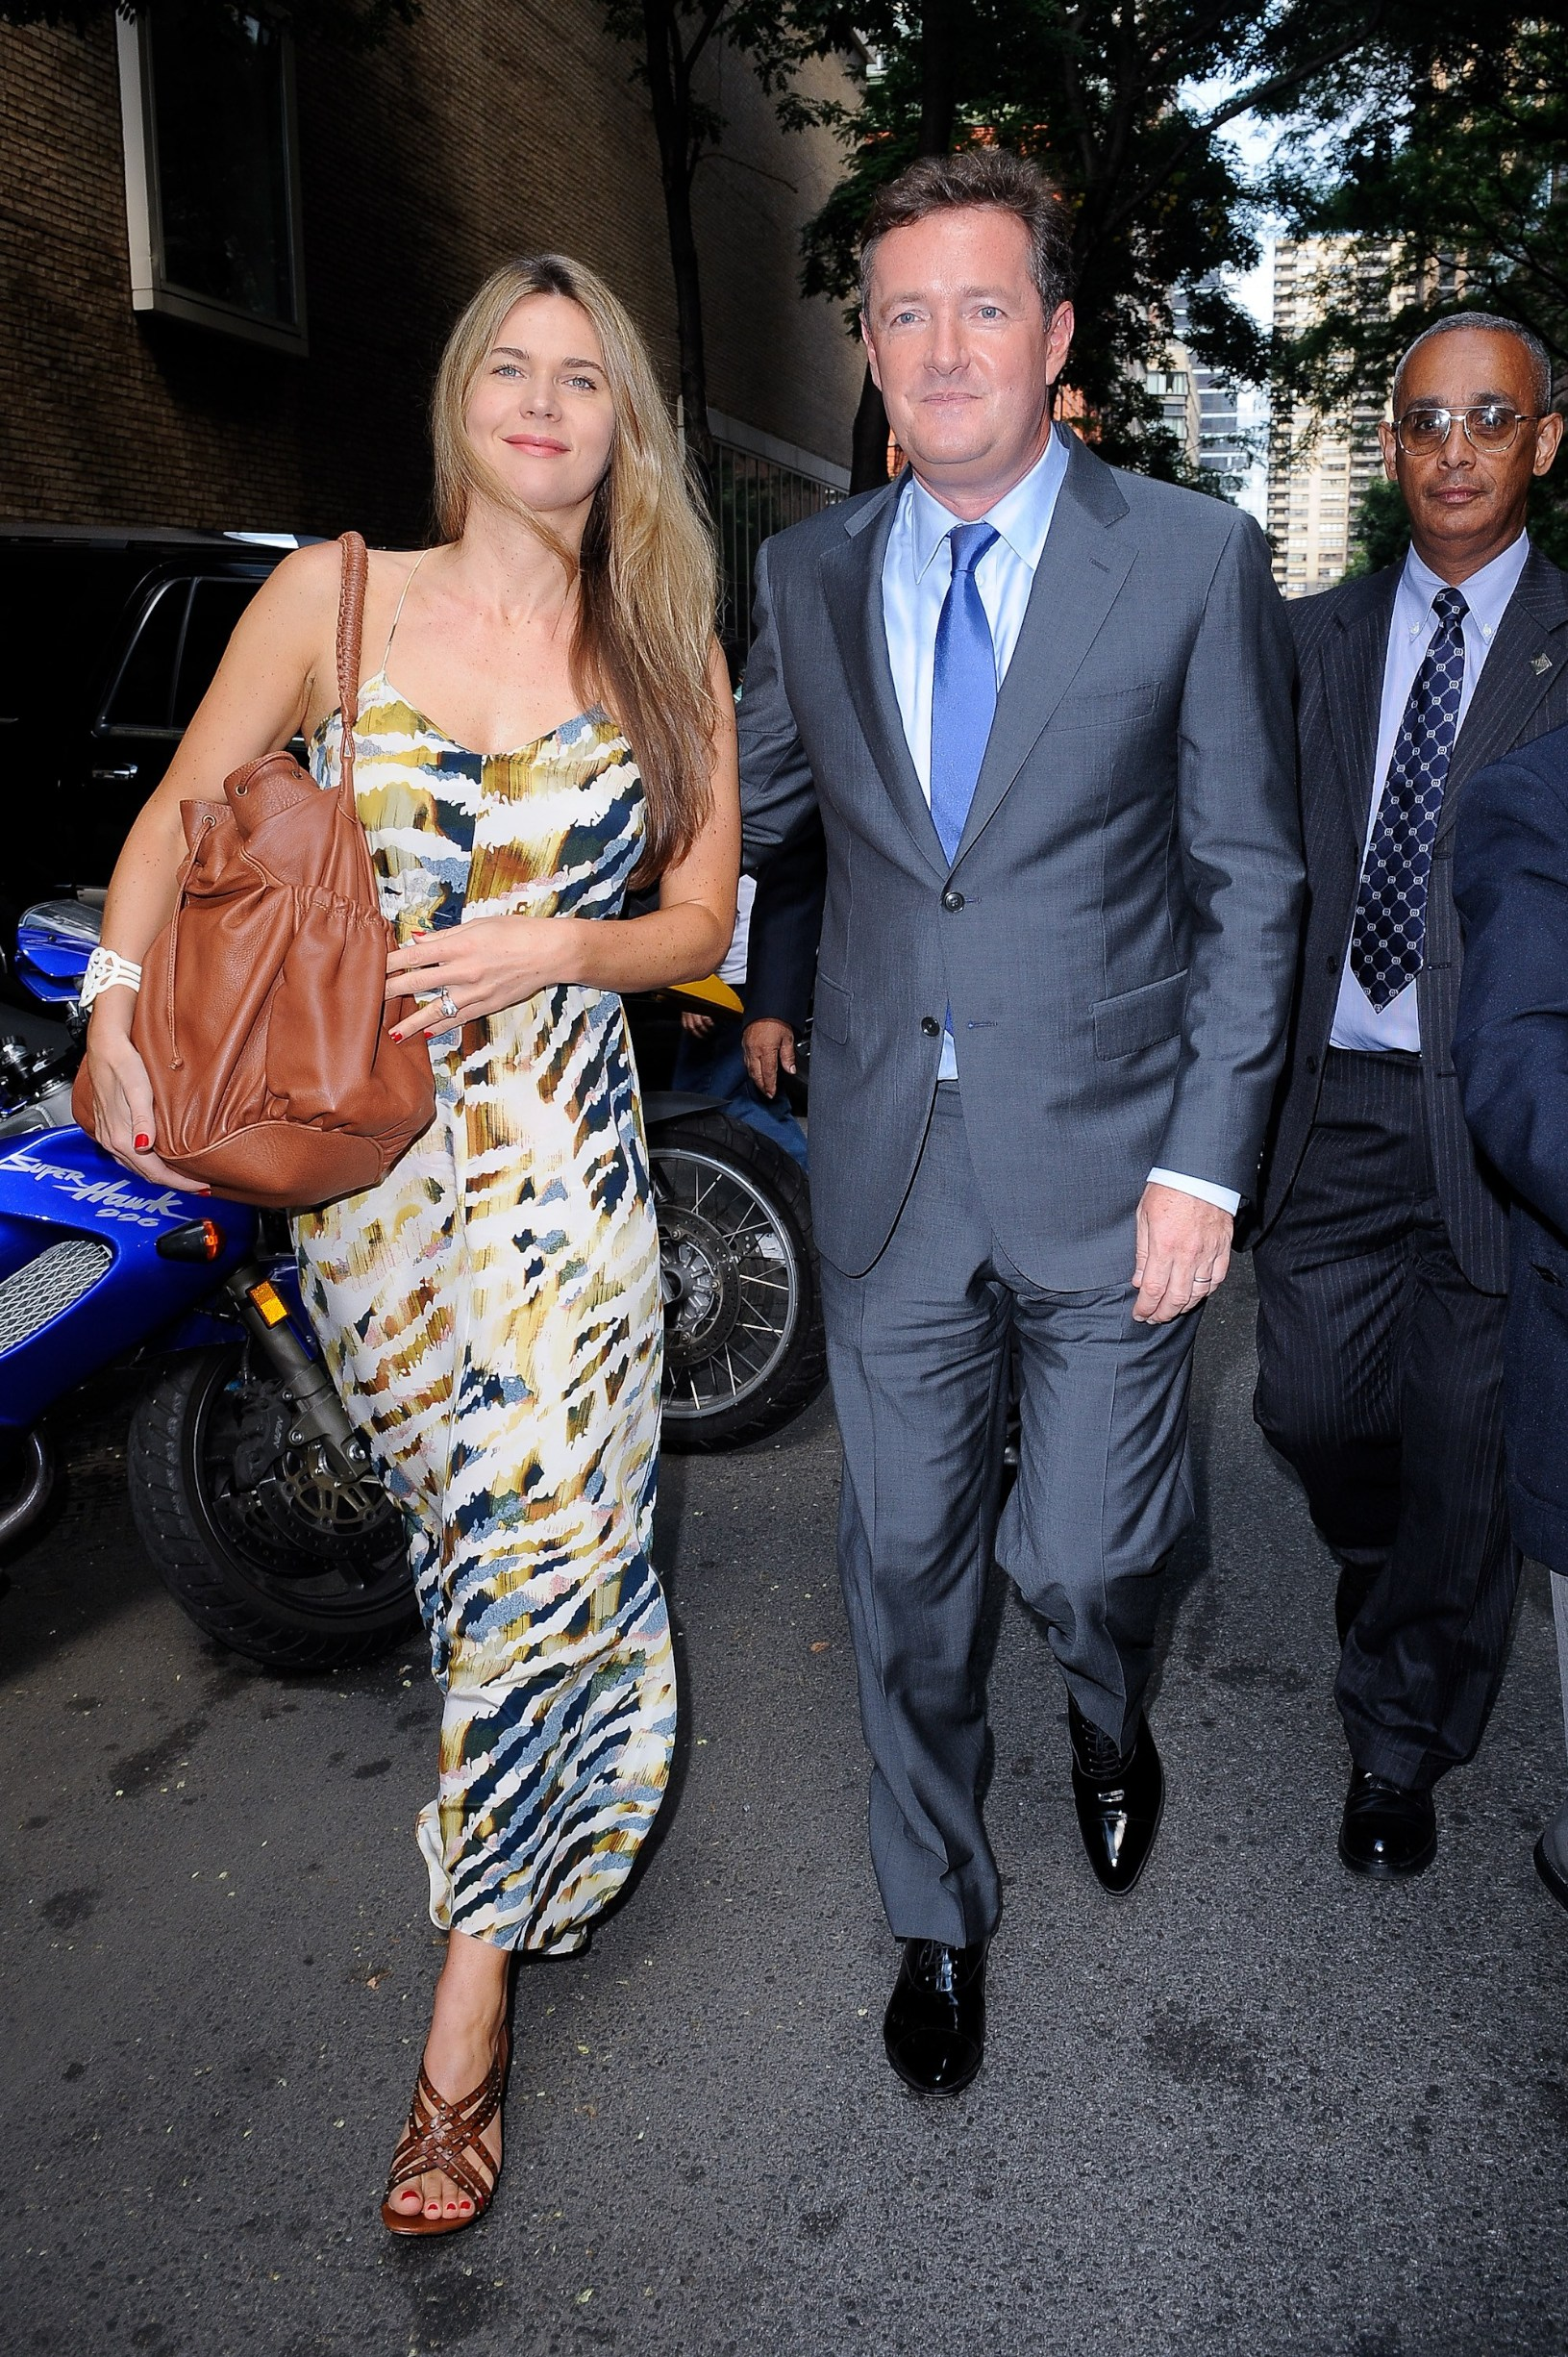 Celia Walden, television personality Piers Morgan, visit 'Live With Regis And Kelly' taping at the ABC Lincoln Center Studios out and about for CELEBRITY CANDIDS - MONDAY, , New York, NY August 2, 2010.,Image: 99536220, License: Rights-managed, Restrictions: For usage credit please use; Ray Tamarra/Everett Collection, Model Release: no, Credit line: Ray Tamarra Collection / Everett / Profimedia